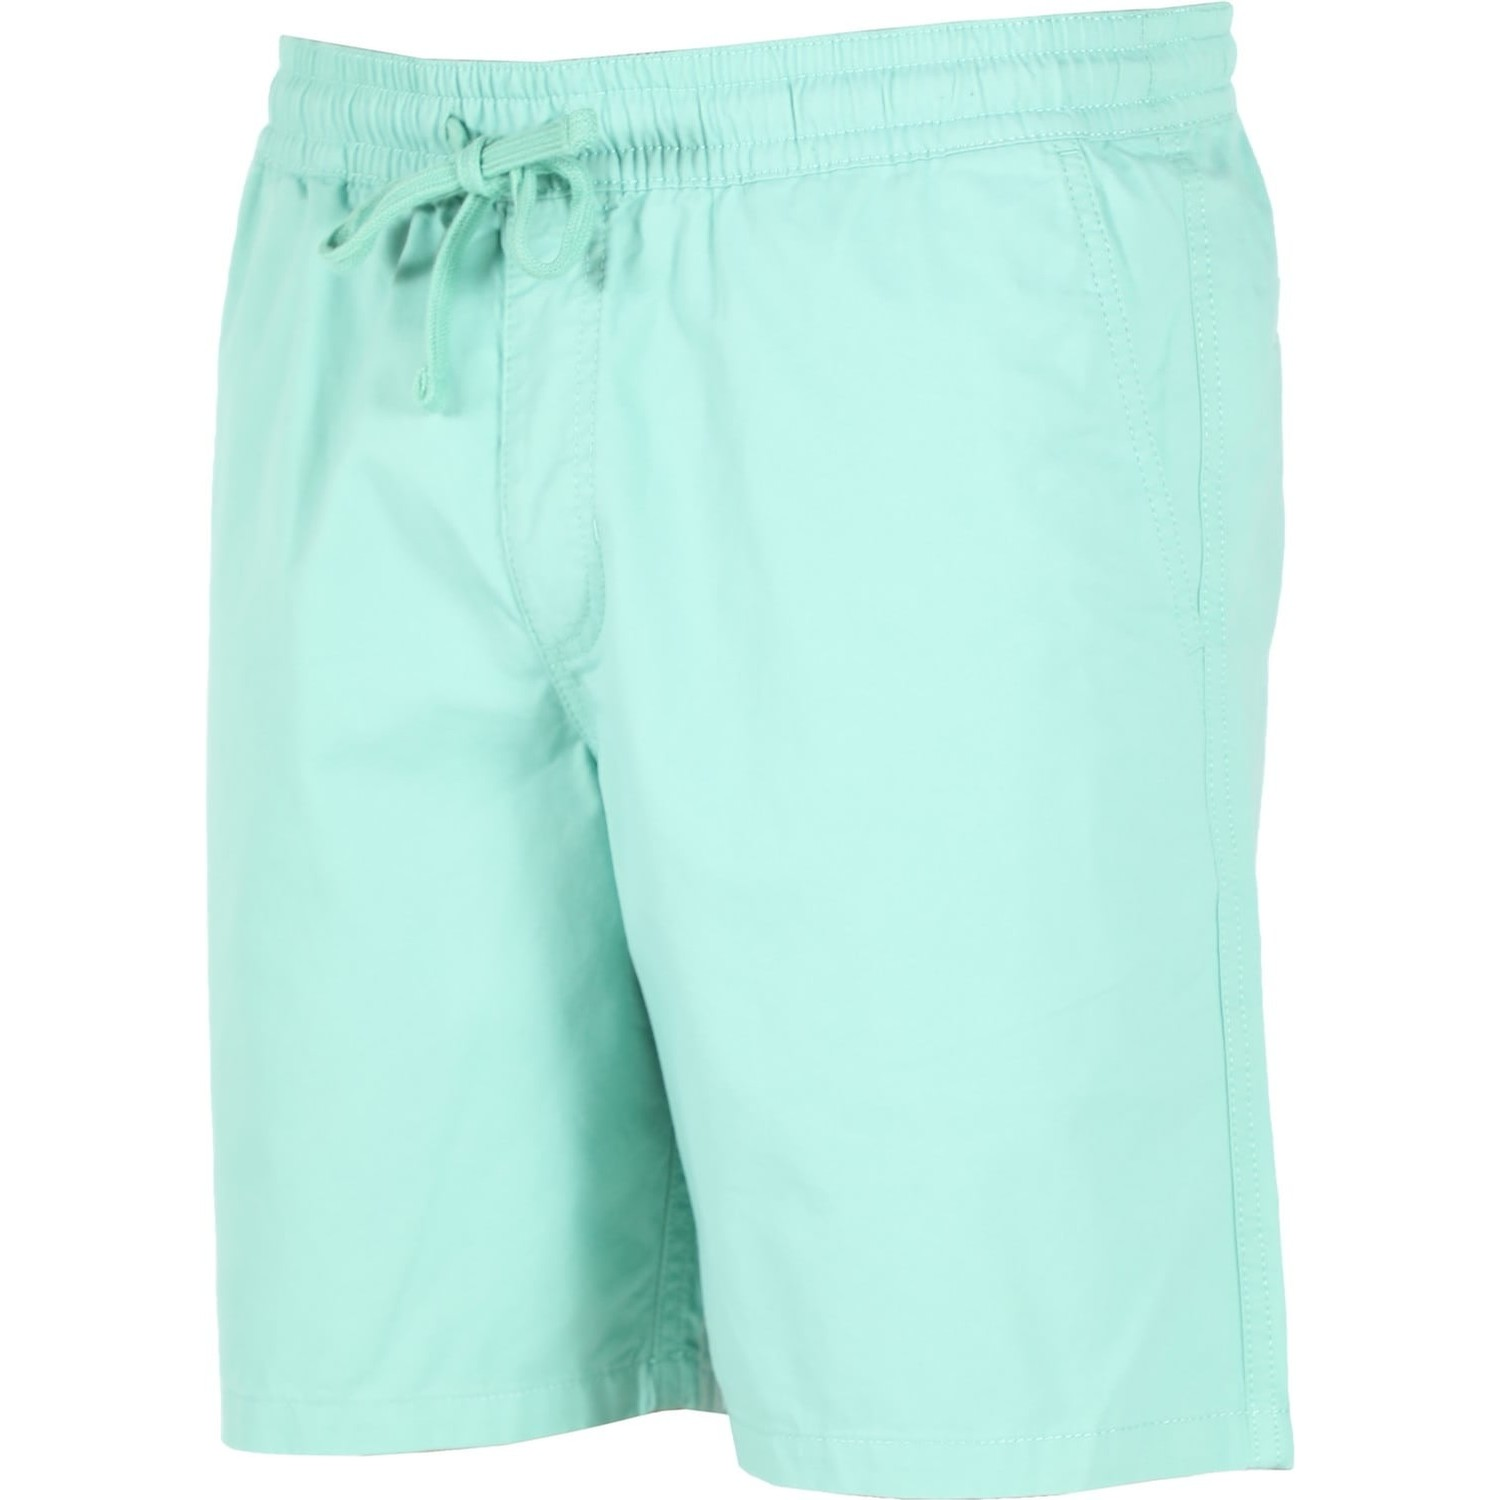 Range 18 Short (Dusty Jade Green)